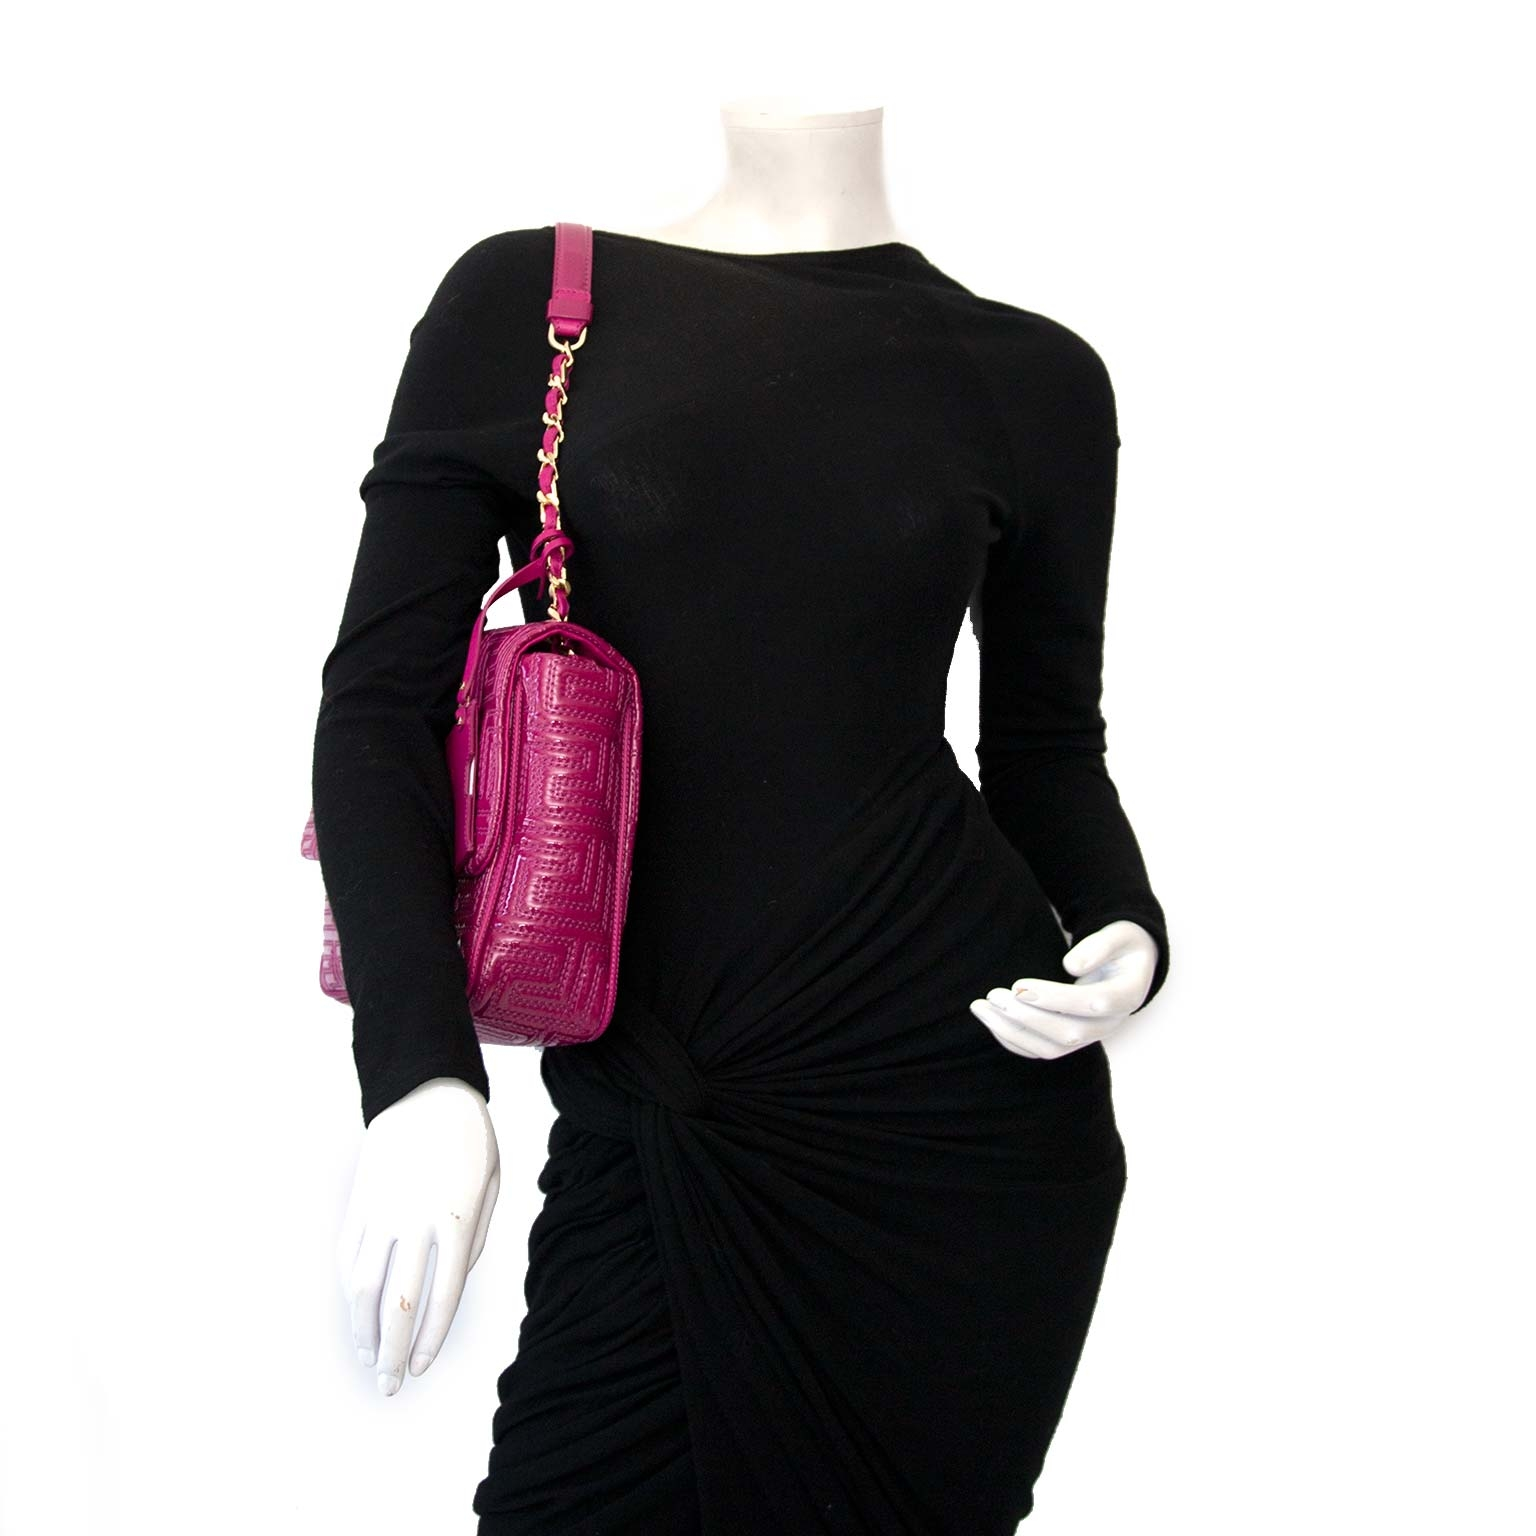 Versace Couture Fuchsia Patent Shoulder Bag Buy authentic designer versace secondhand bags at Labellov at the best price. Safe and secure shopping. Koop tweedehands authentieke versace tassen bij designer webwinkel labellov.